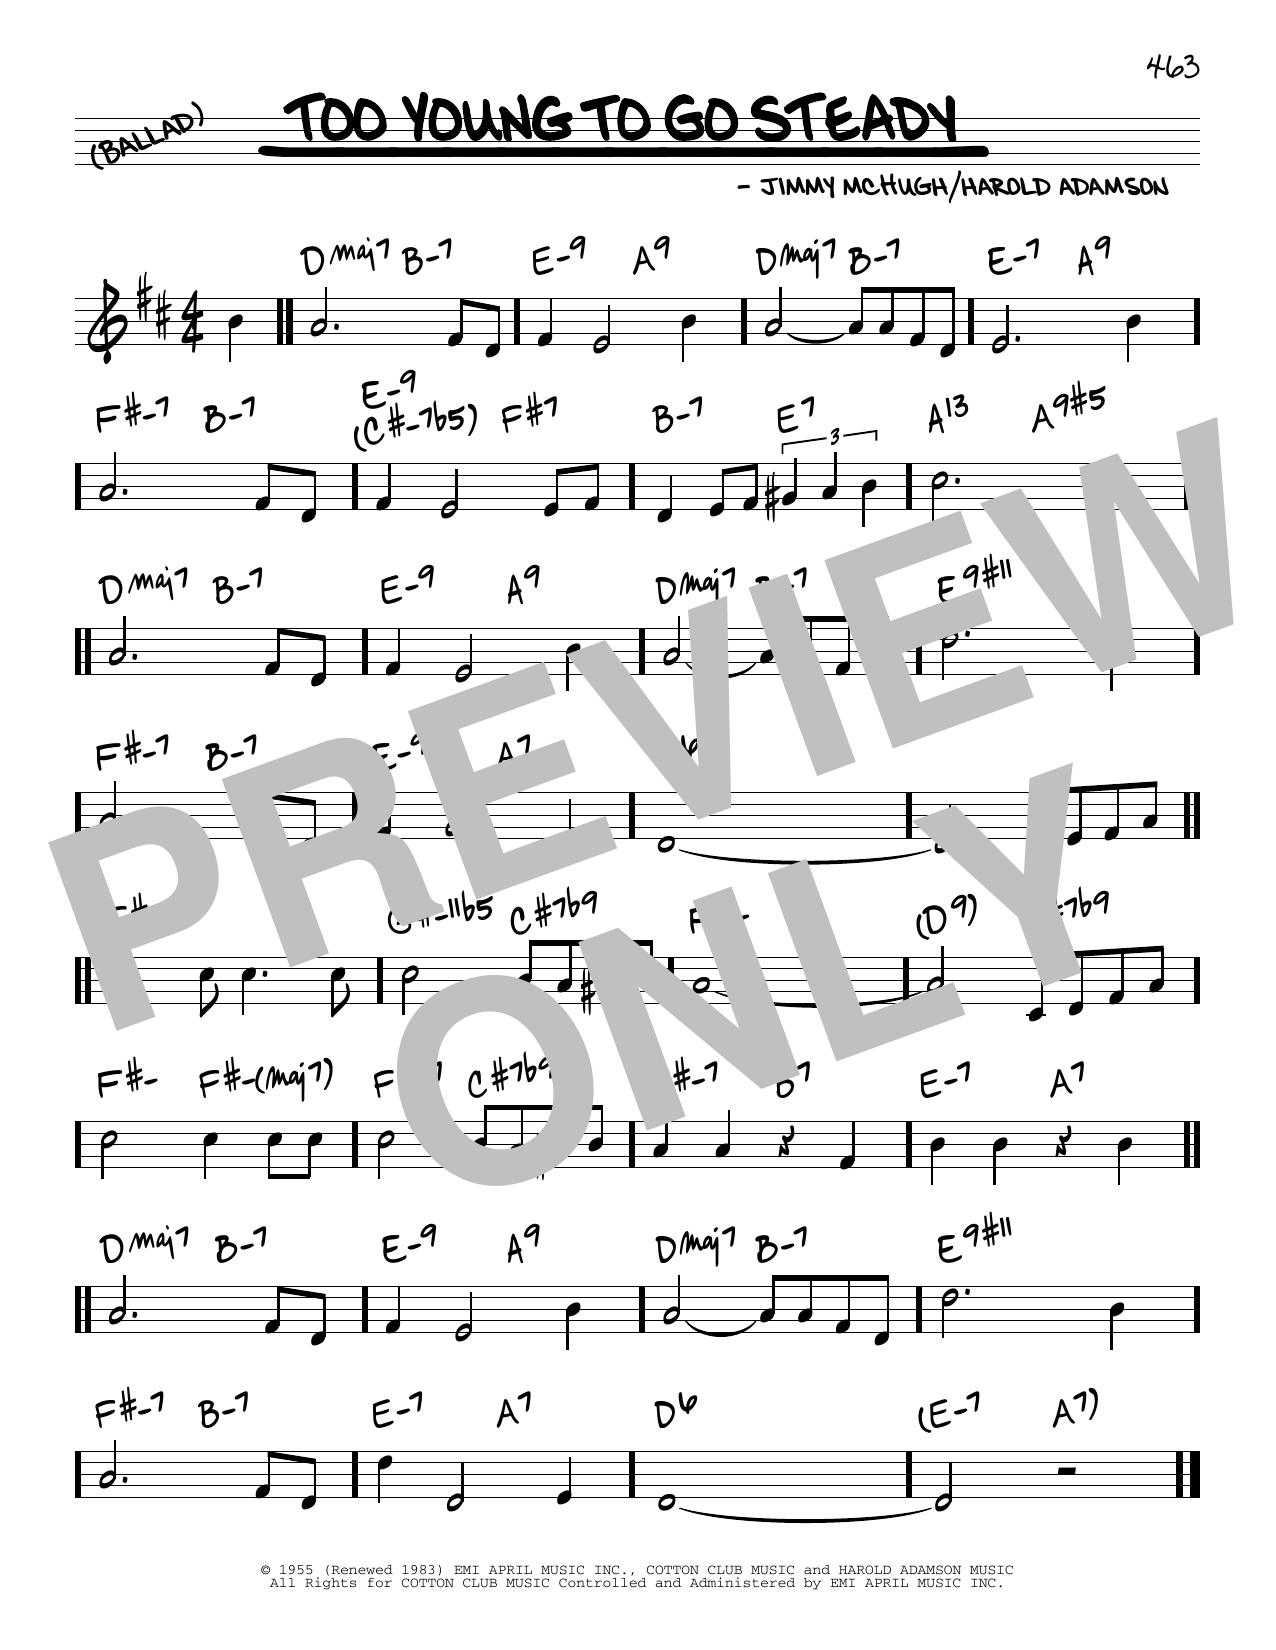 Jimmy McHugh Too Young To Go Steady sheet music notes and chords. Download Printable PDF.